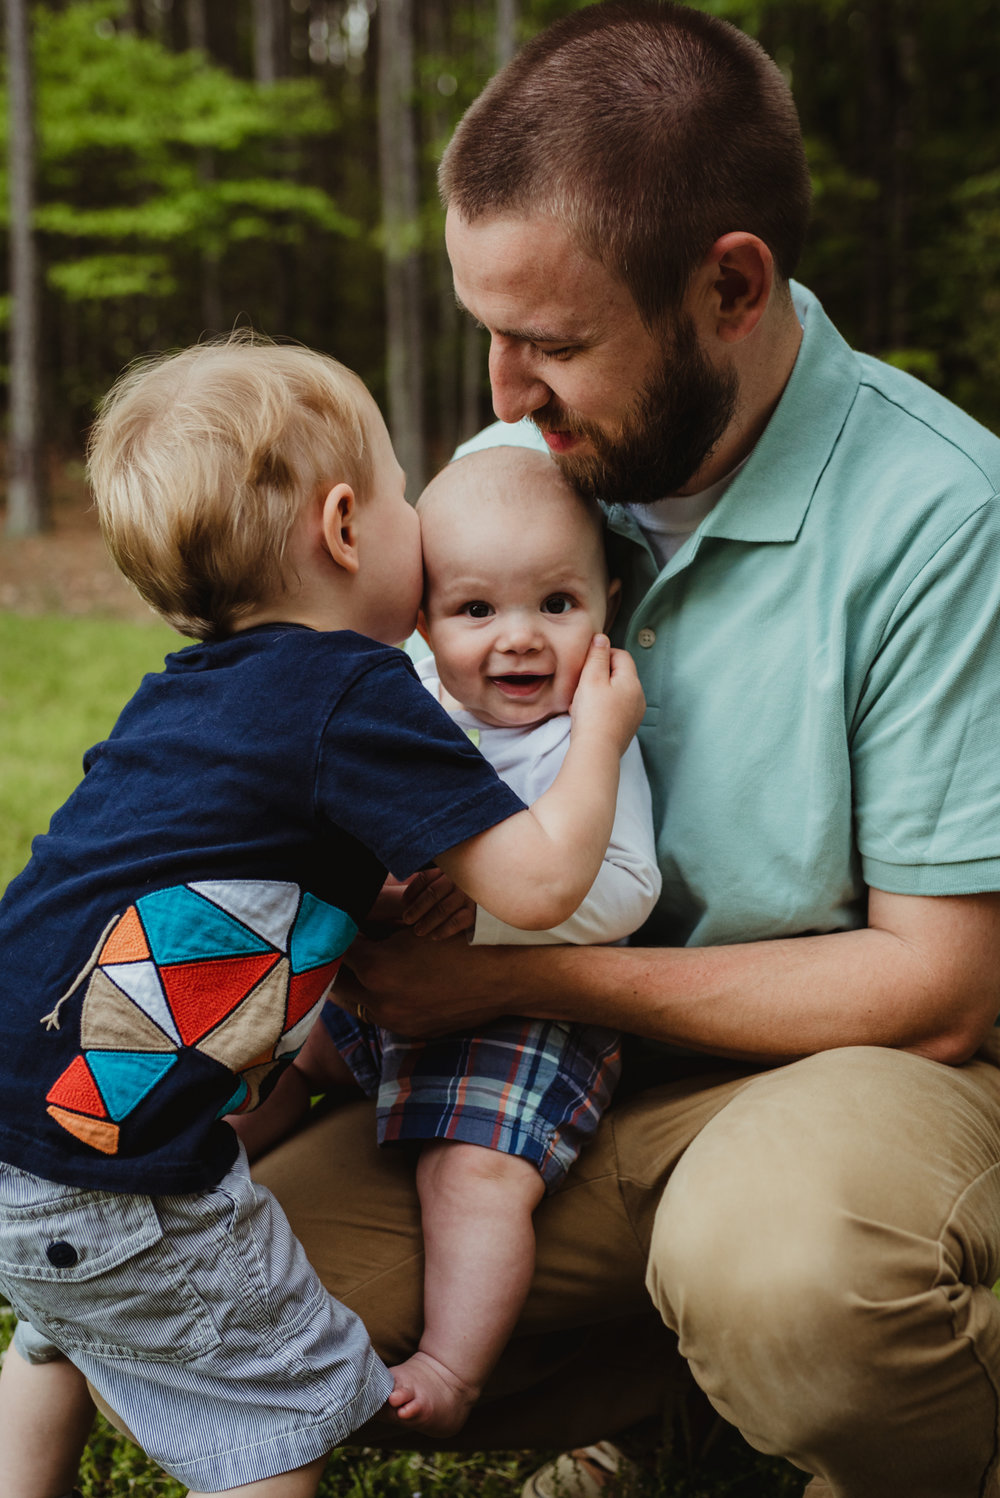 This big brother kisses his baby brother during their photo session with Rose Trail Images in Rolesville, North Carolina.